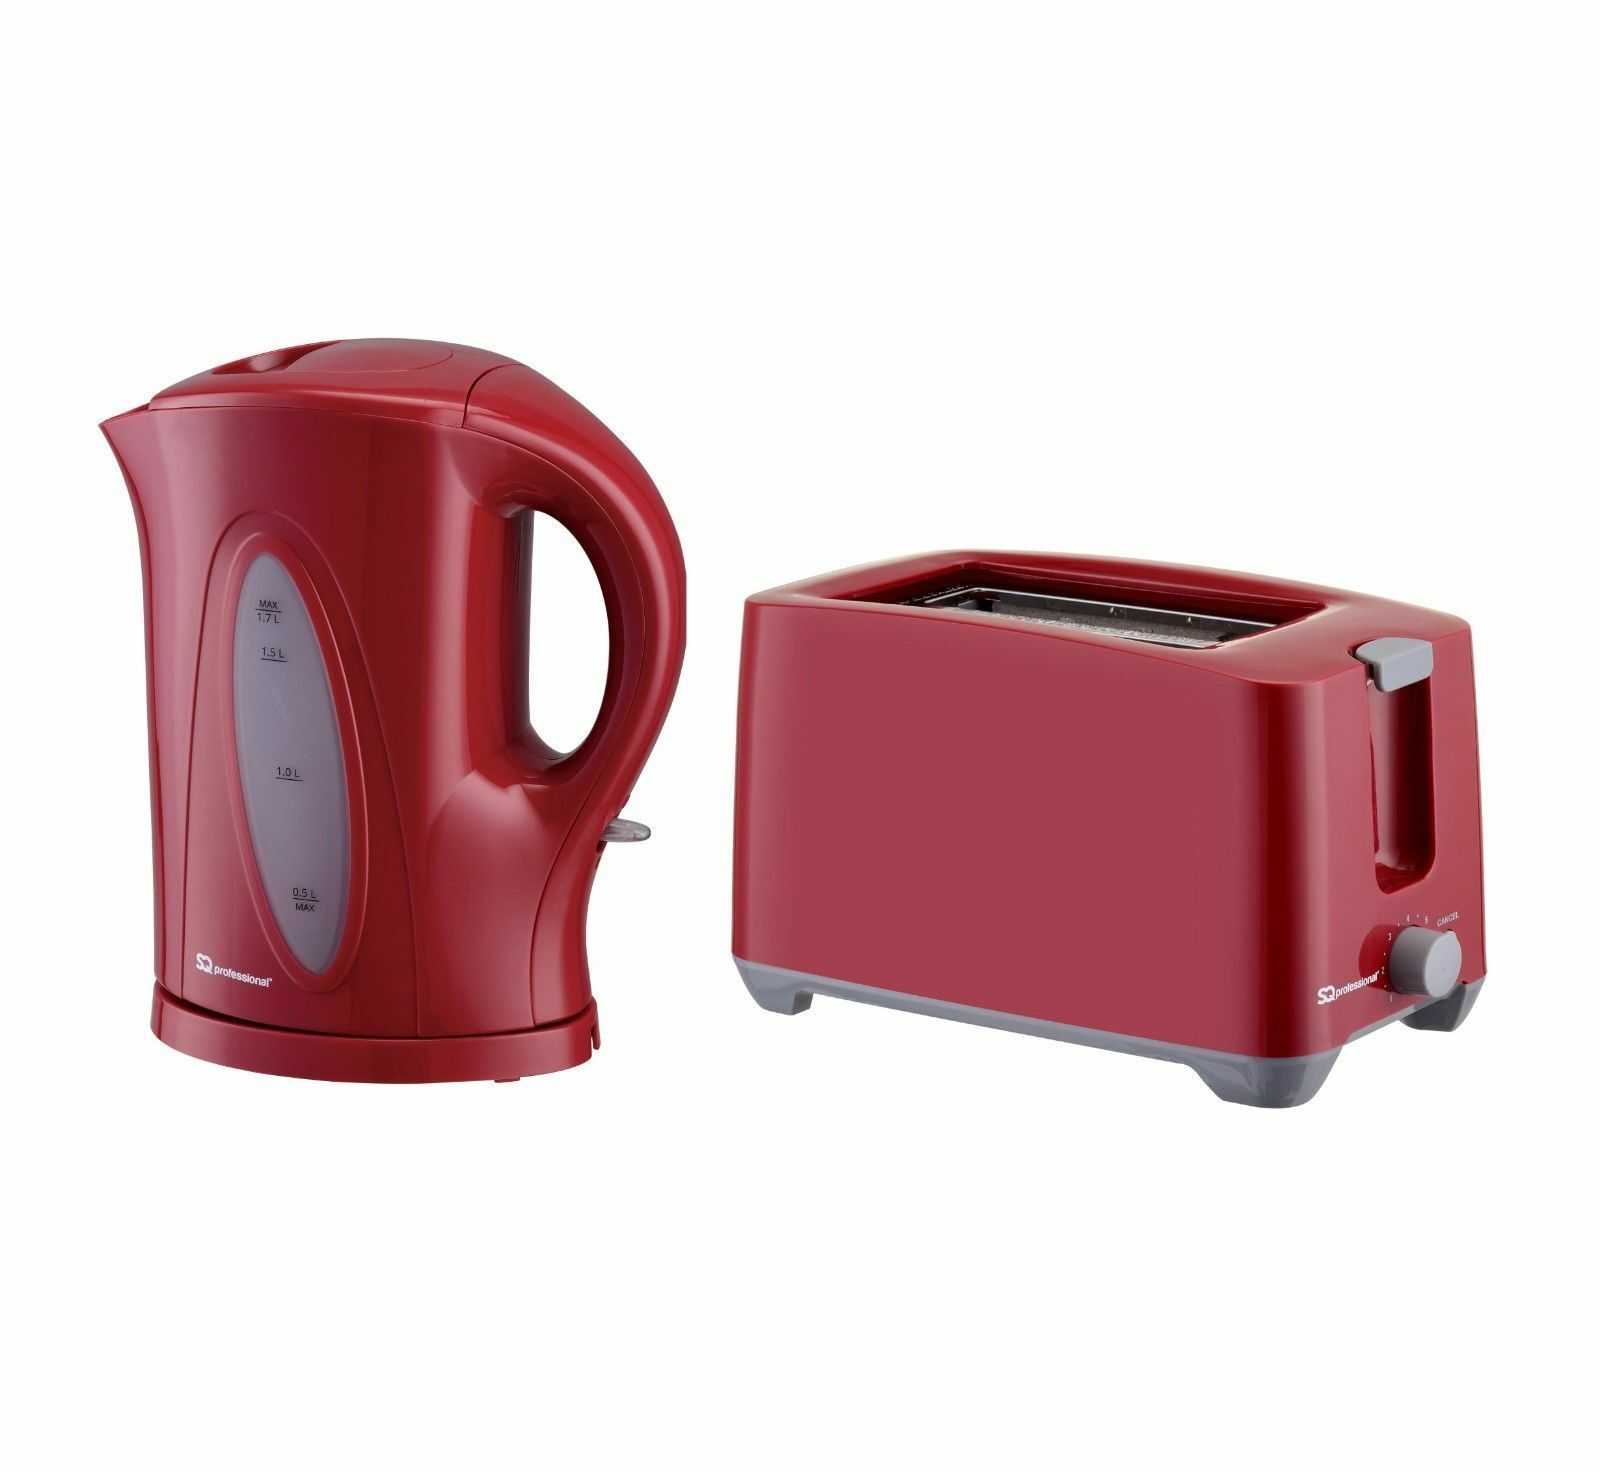 Details about Red 1.7L Aquen Cordless Electric Kettle & 2 Two Bread Slice Slot Toaster Set